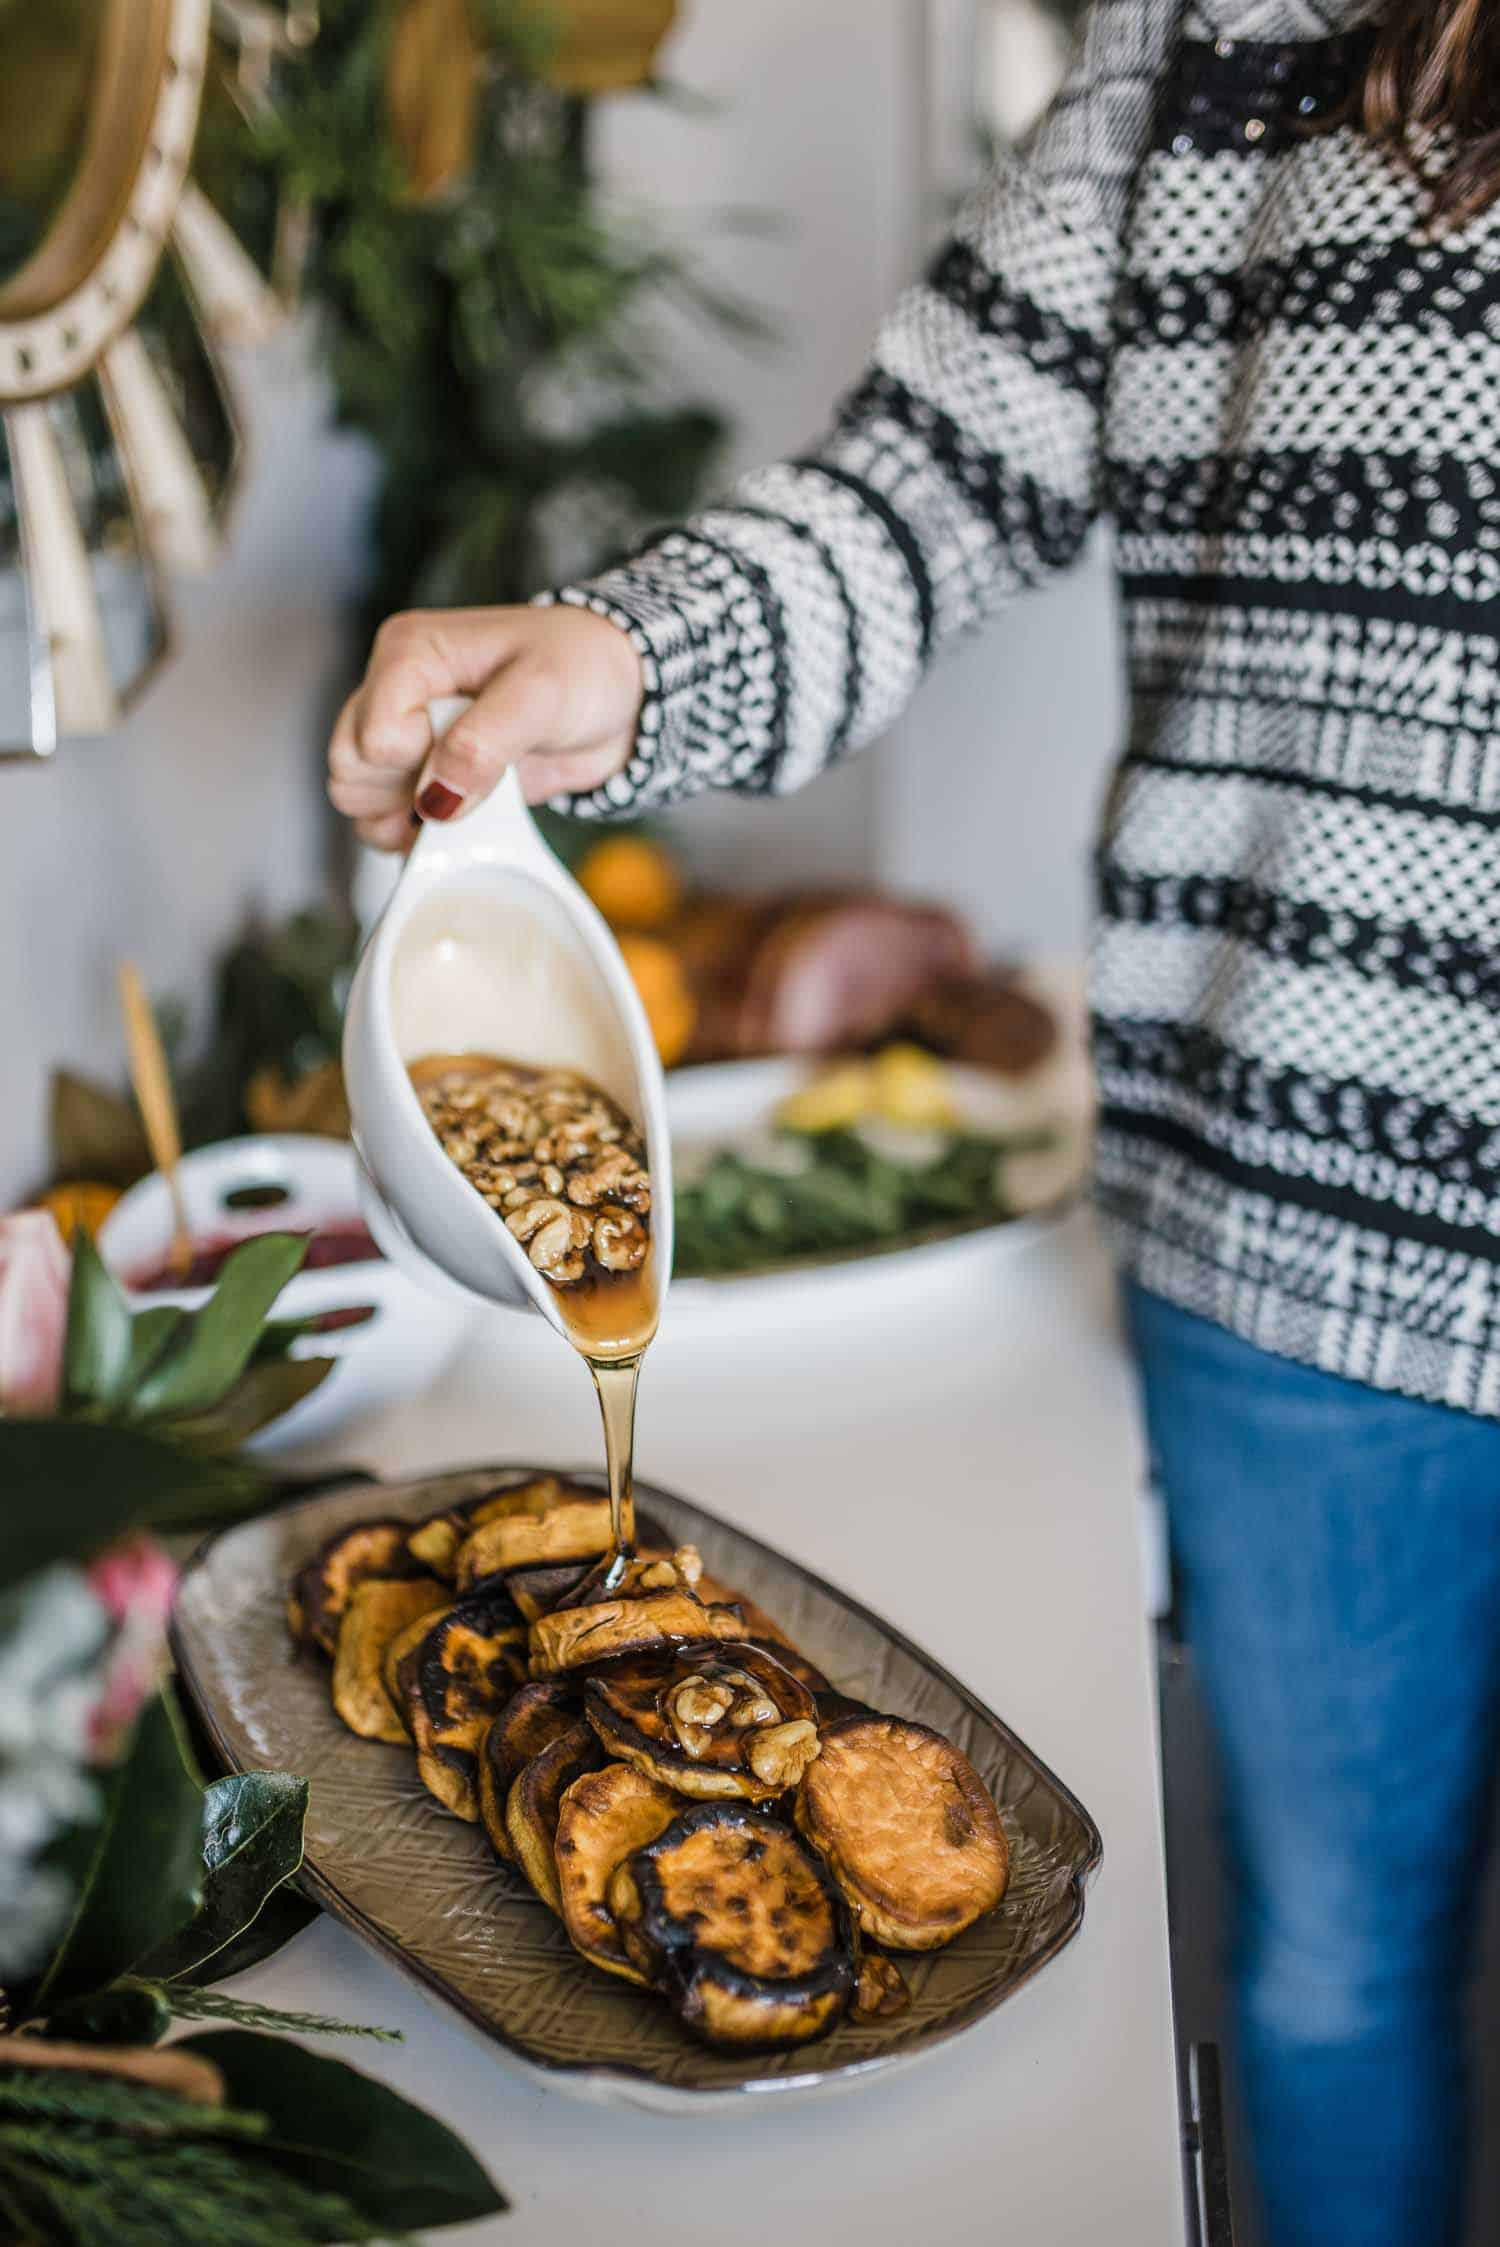 Sweet potato recipes, side dishes for Thanksgiving - My Style Vita